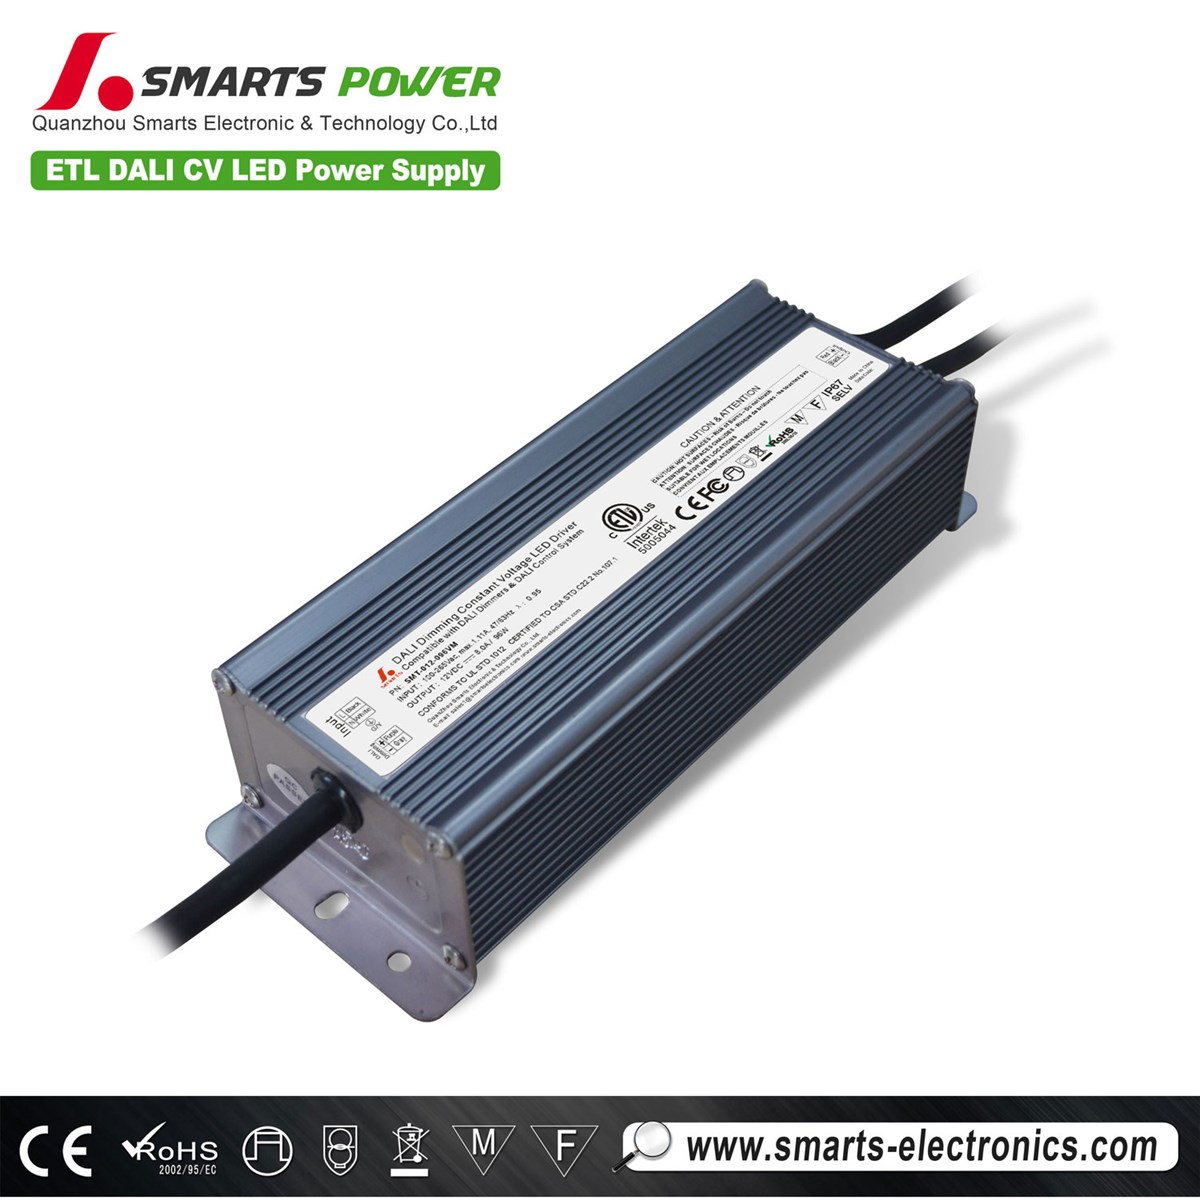 12 Volt 100W DALI Dimmable Constant Voltage LED Driver for Puck Light